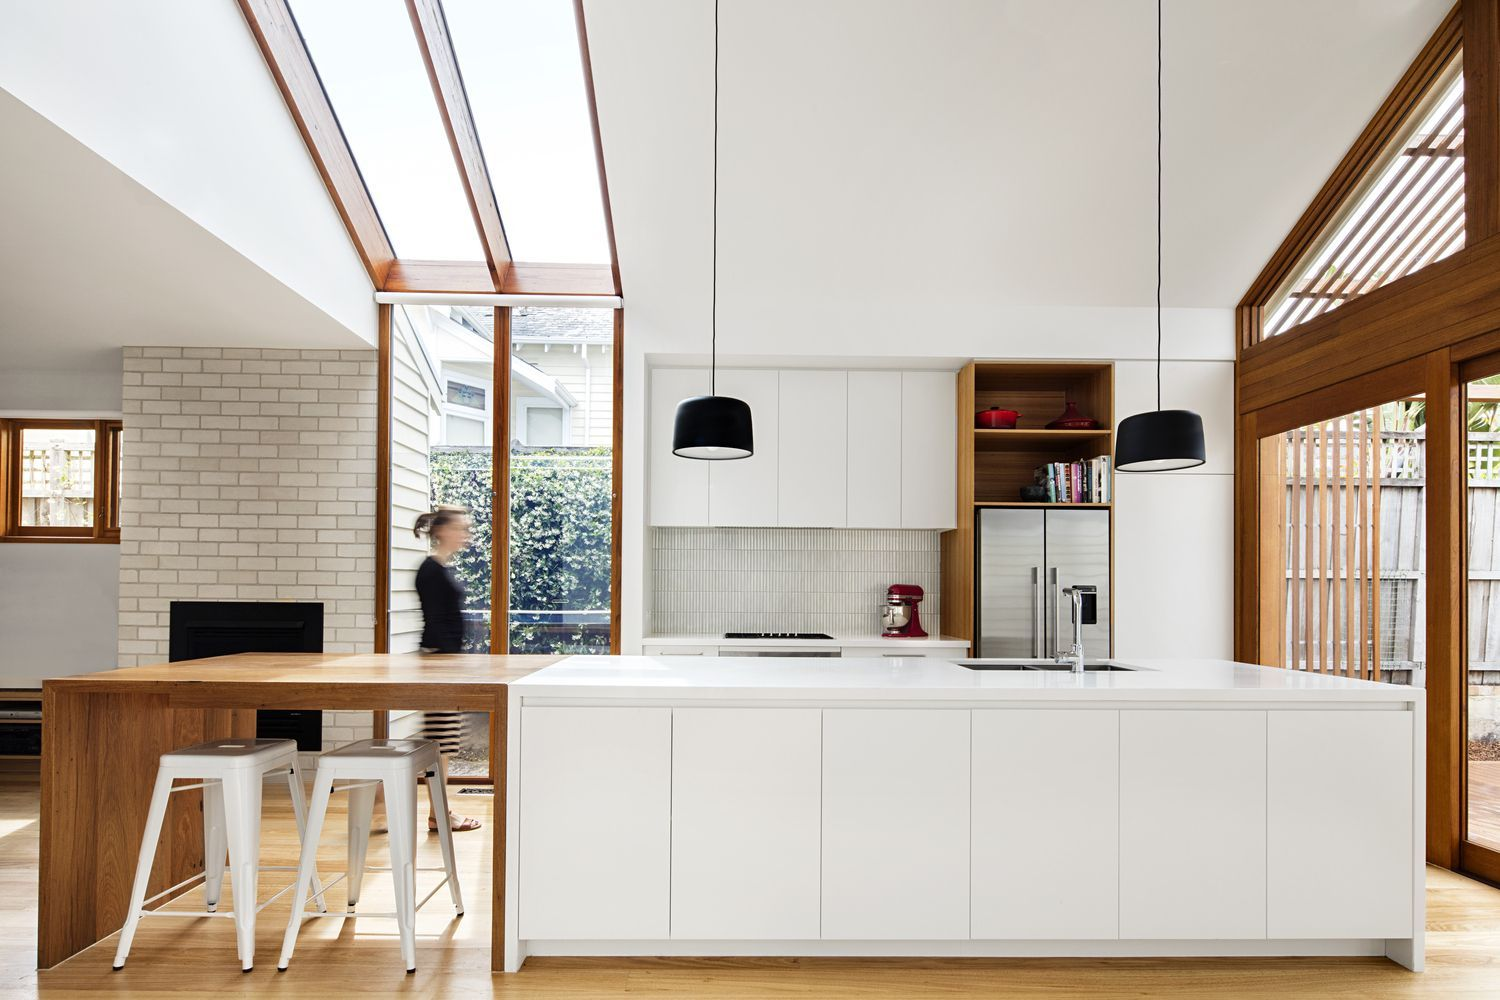 Image Result For Creative Kitchen Design Gable House